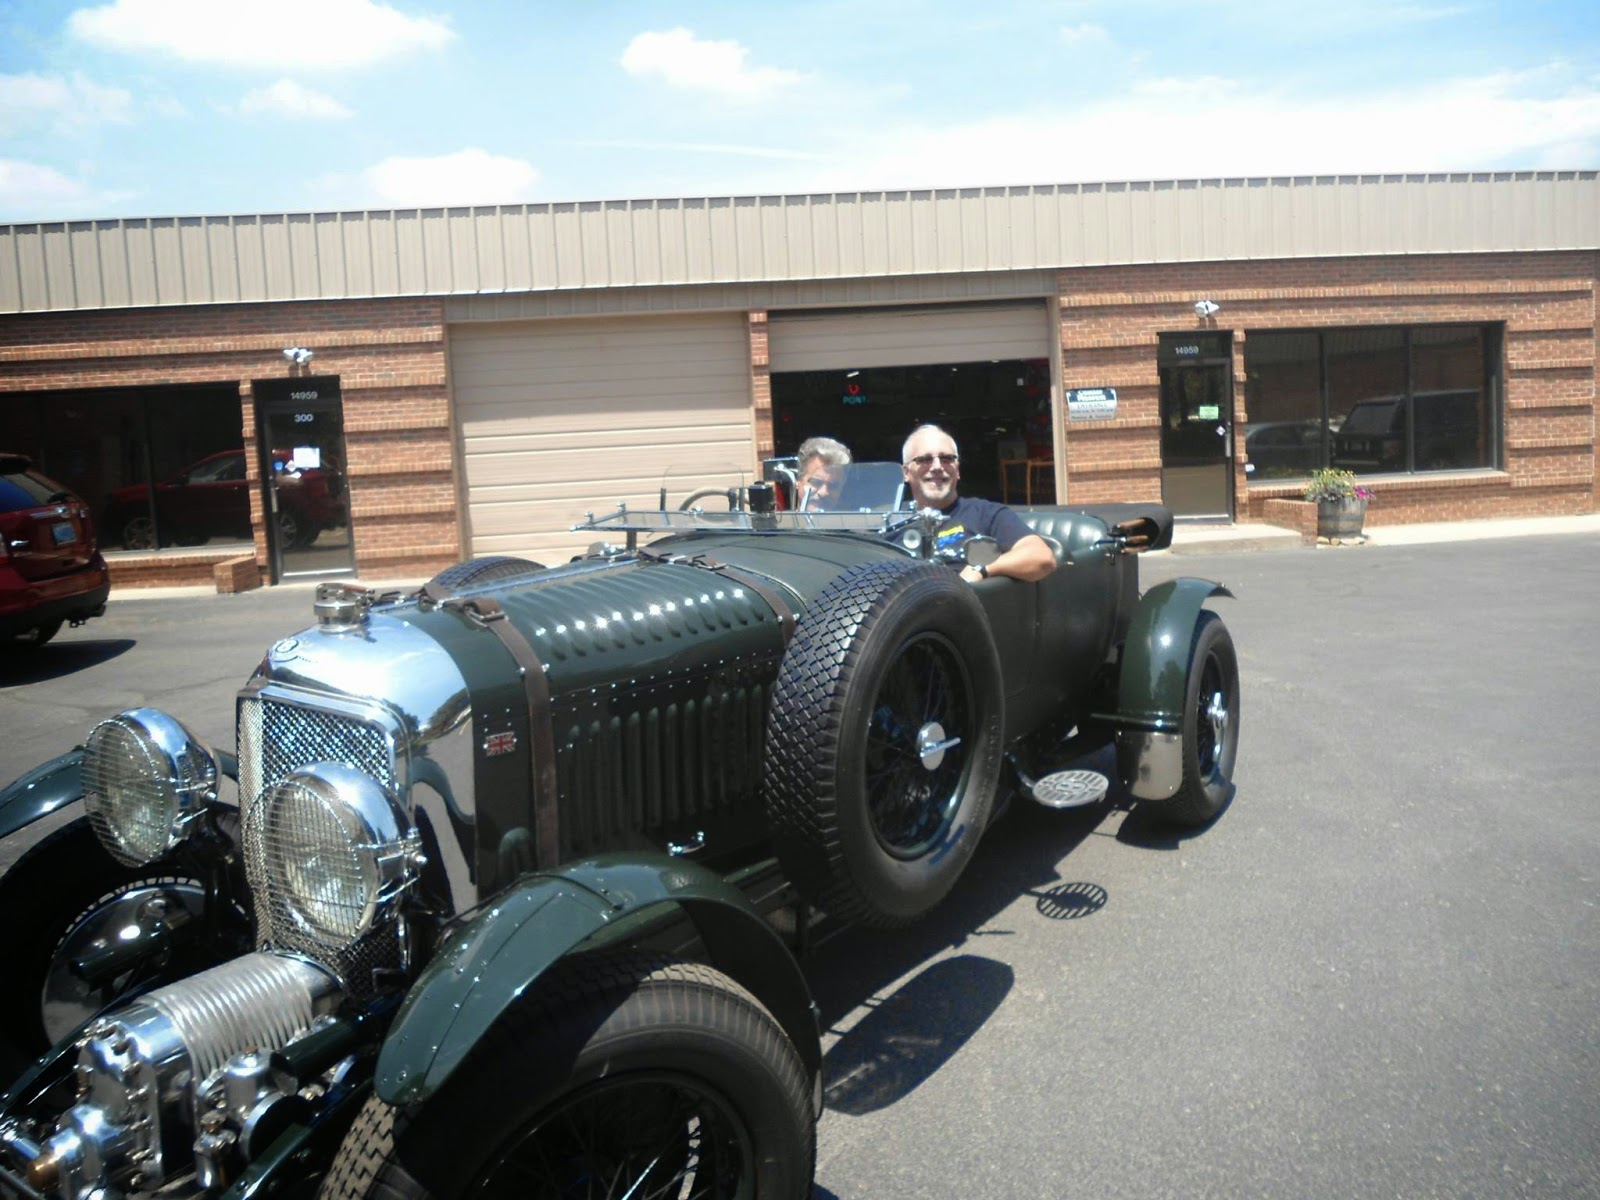 Clive cussler book collecting the bently blower wade and wayne taking the 1929 bentley blower for a test drive before the upcoming photo shoot for release of the new clive and dirk cussler dirk pitt voltagebd Image collections